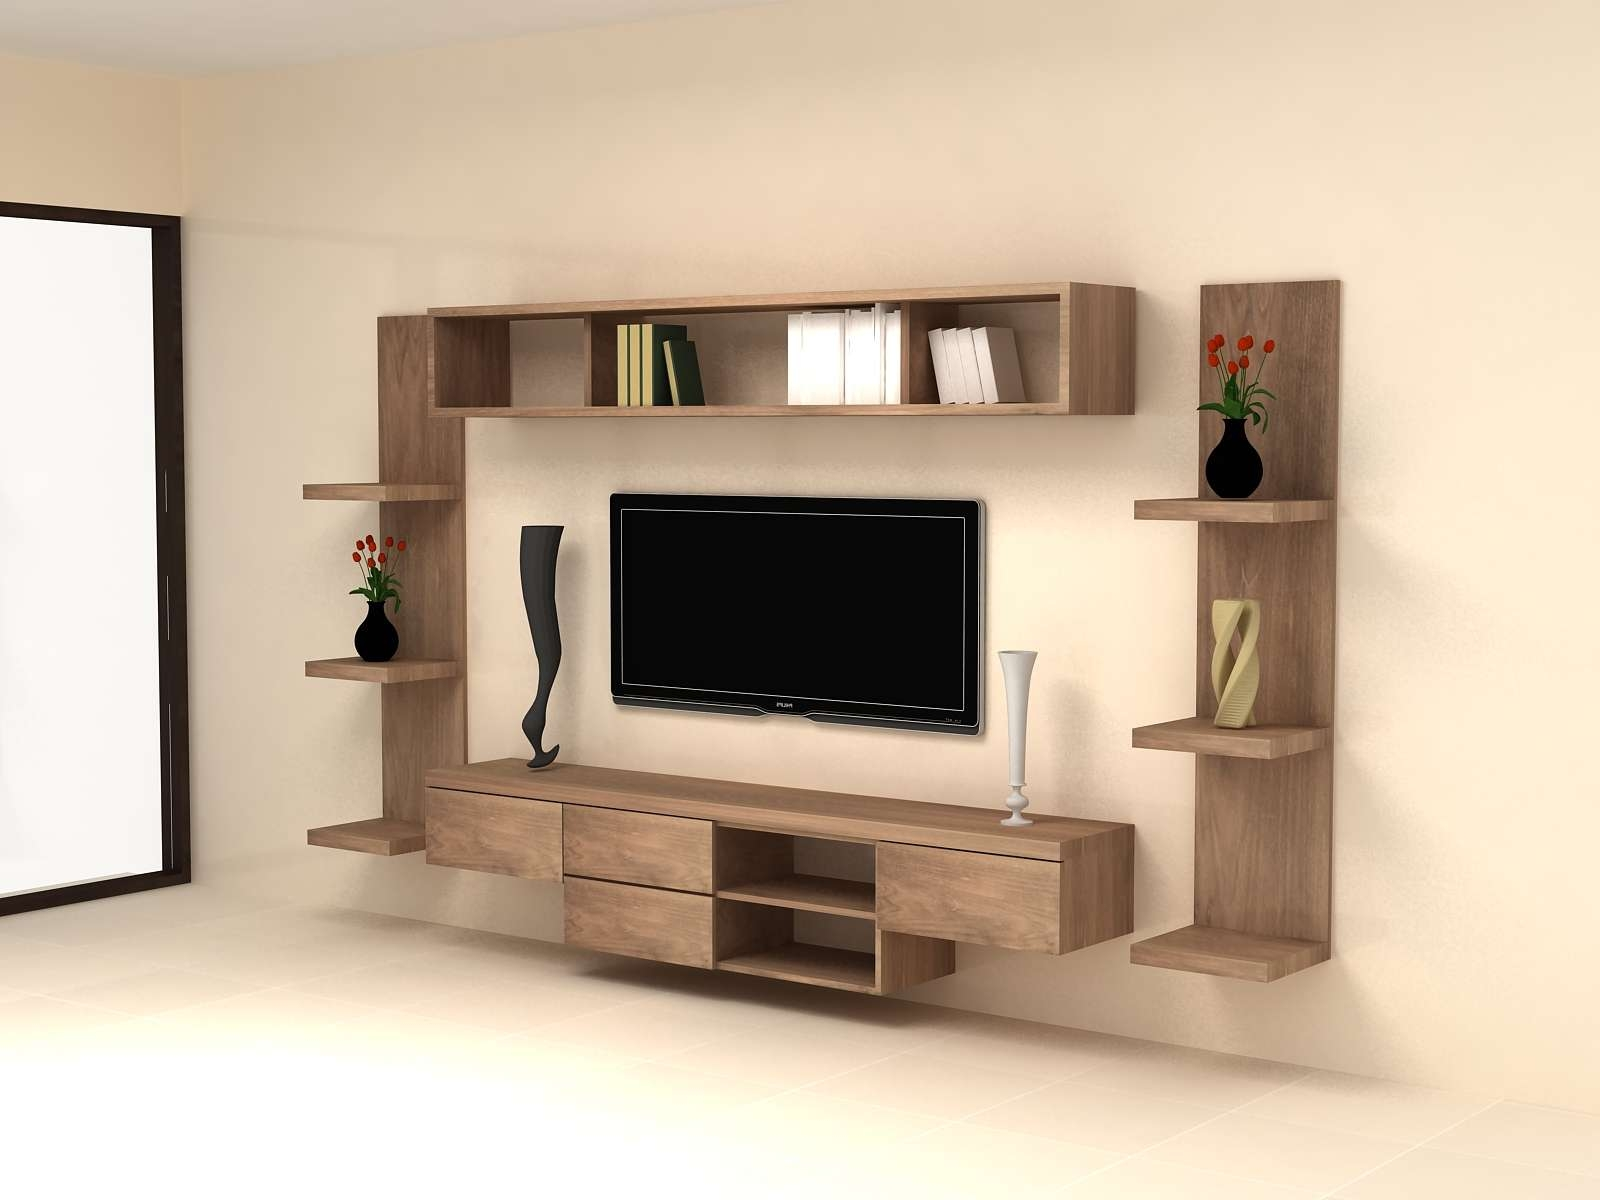 Bedroom : Tv Wall Unit Designs Tv Stand Unit Thin Tv Stand Wall Regarding Contemporary Tv Cabinets (View 10 of 20)